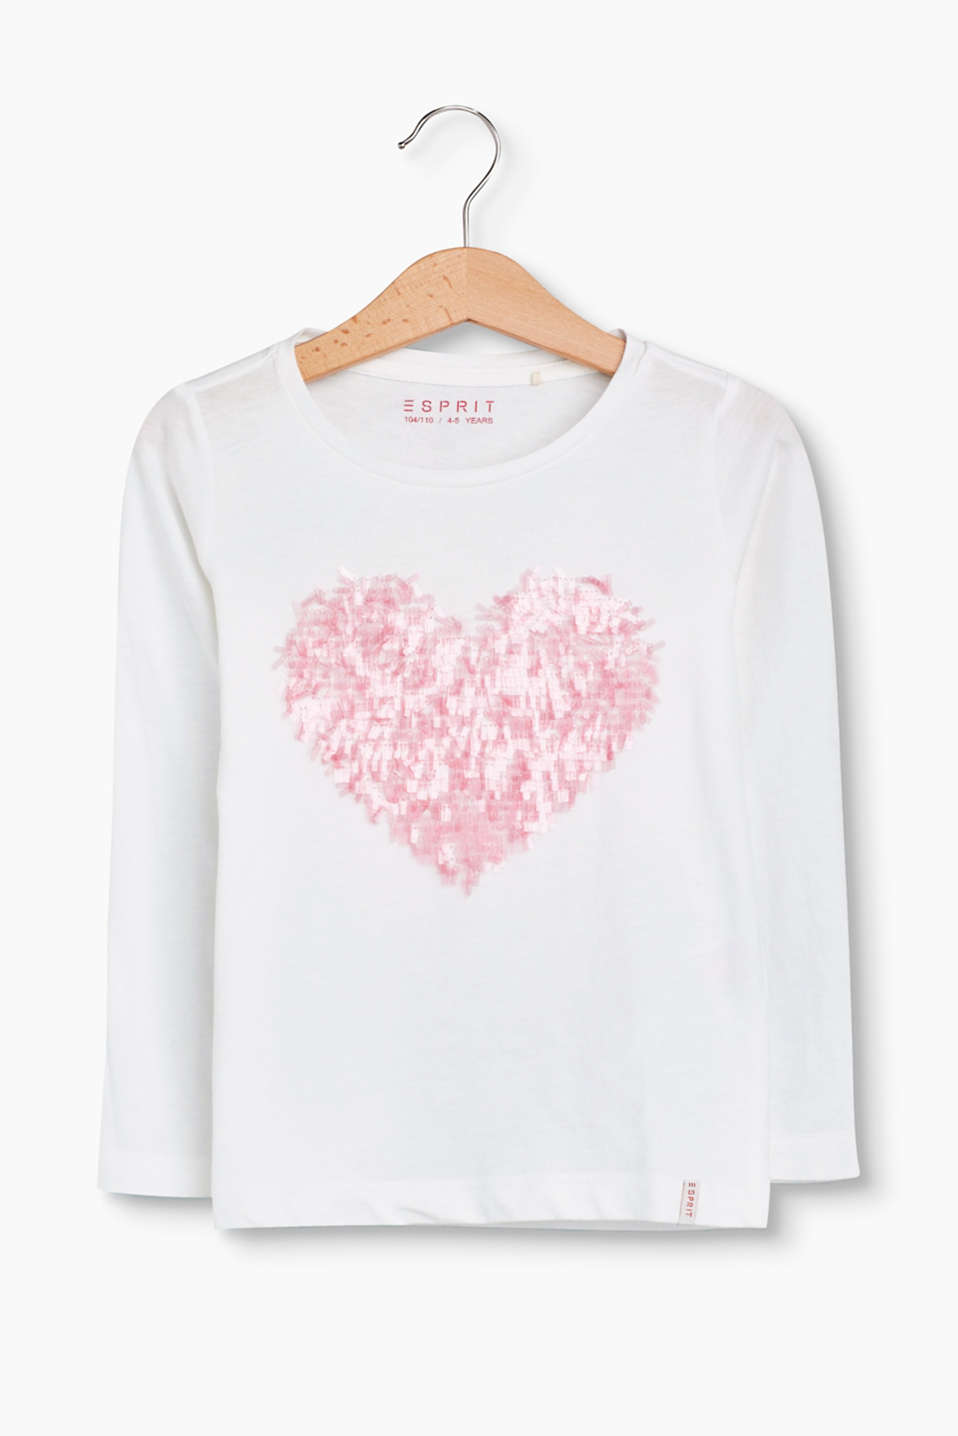 Gorgeously glittery! The appliquéd heart in dazzling little rod sequins transforms this tee into a trendy head-turner.